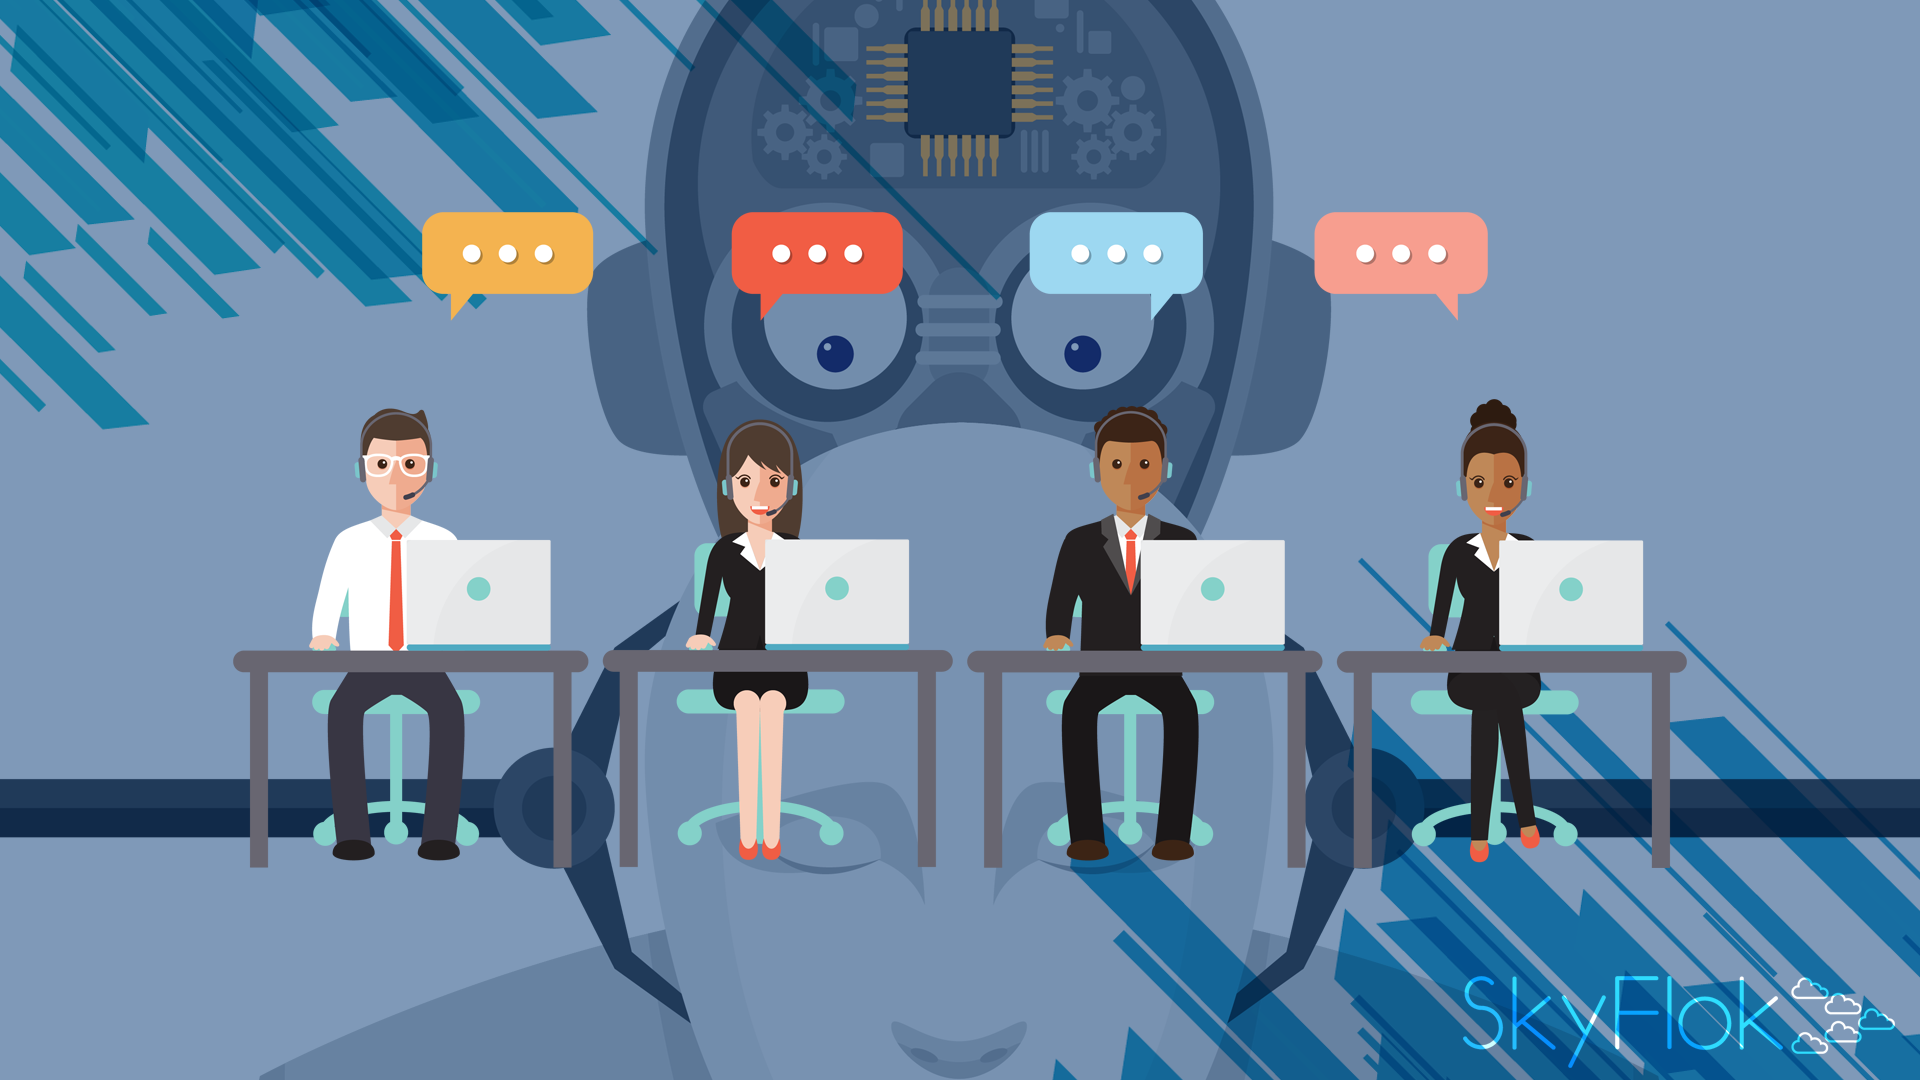 IFS releases AI tool to simplify customer service